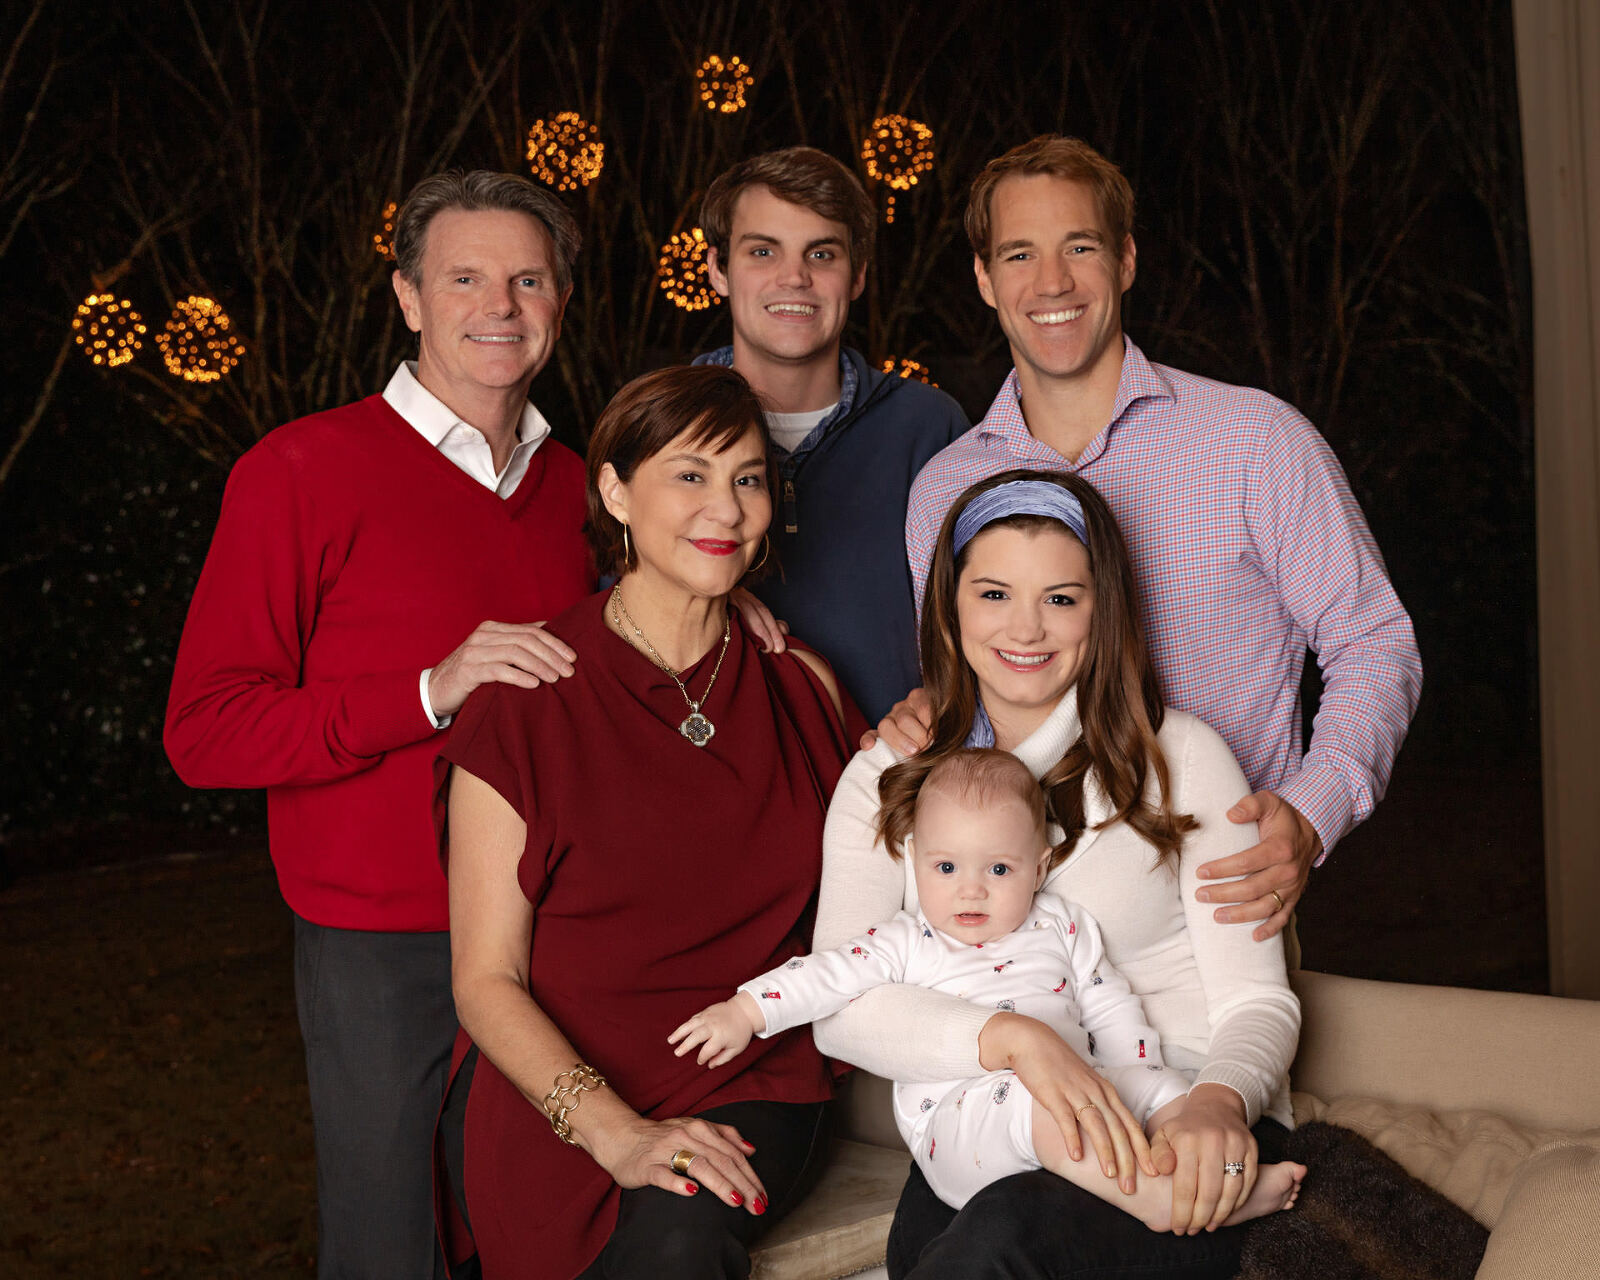 Family photography picture by Irene Gardner in Birmingham, Alabama